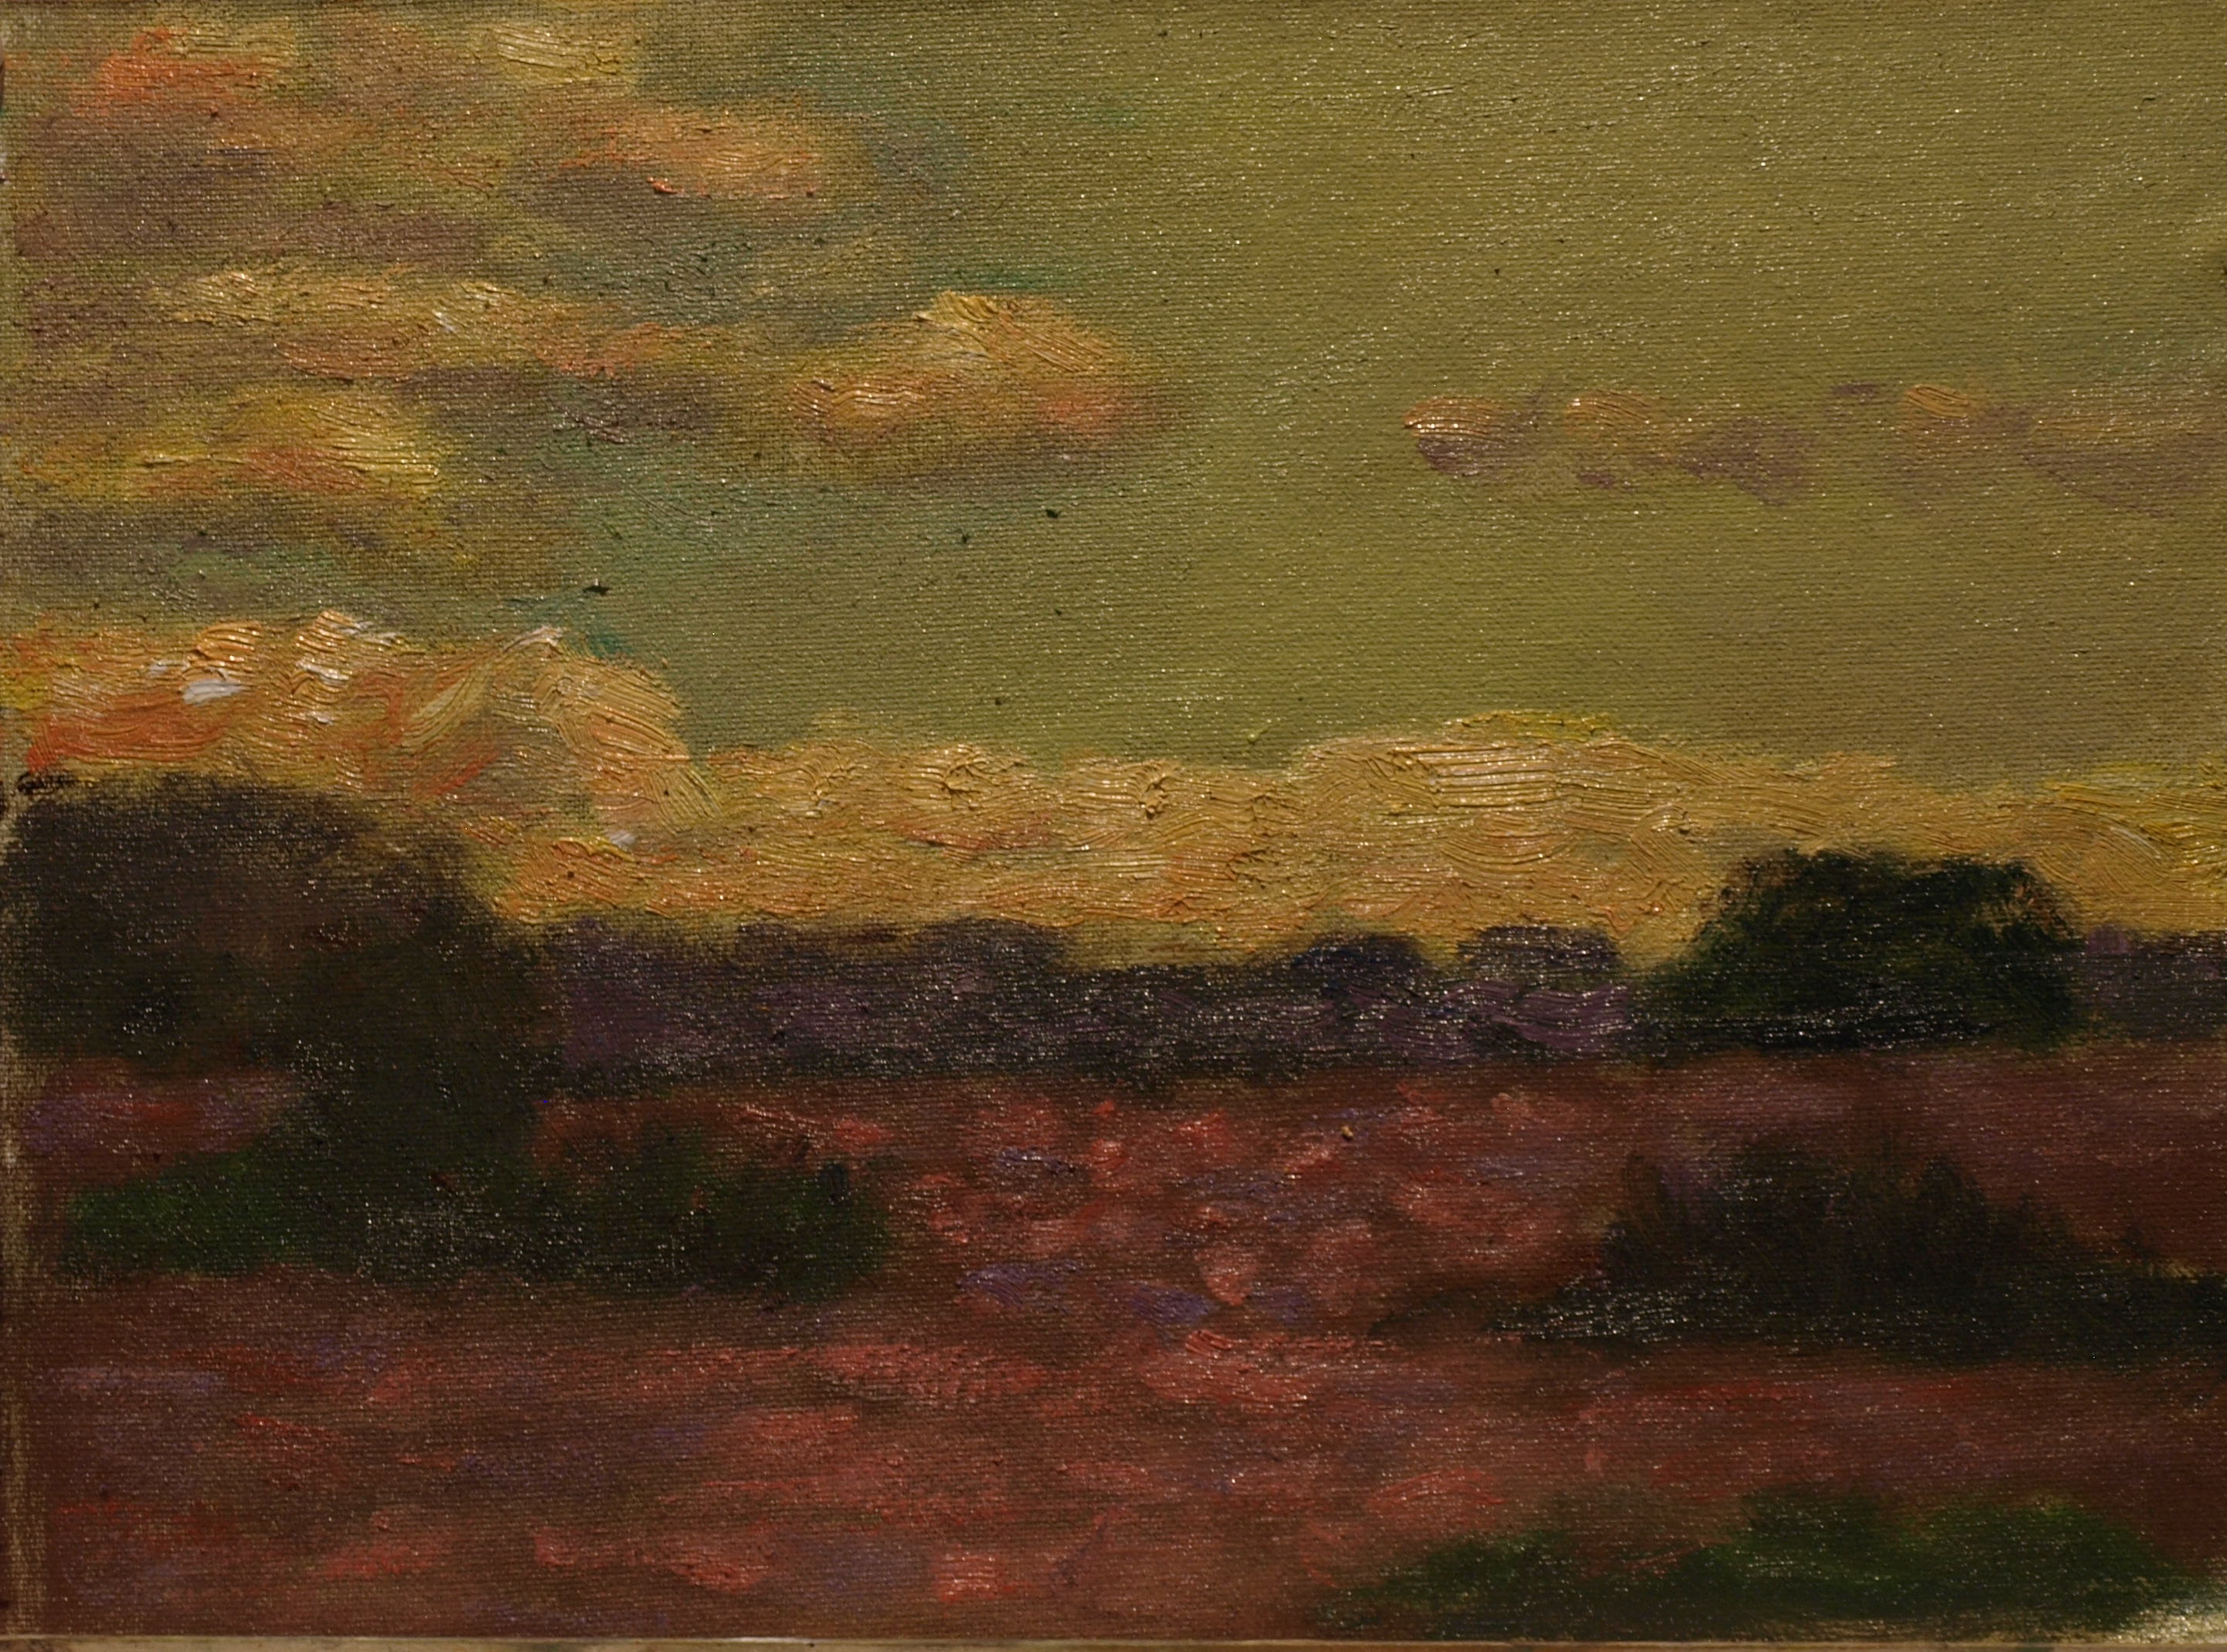 Red Grasses, Oil on Canvas on Panel, 9 x 12 Inches, by Richard Stalter, $220